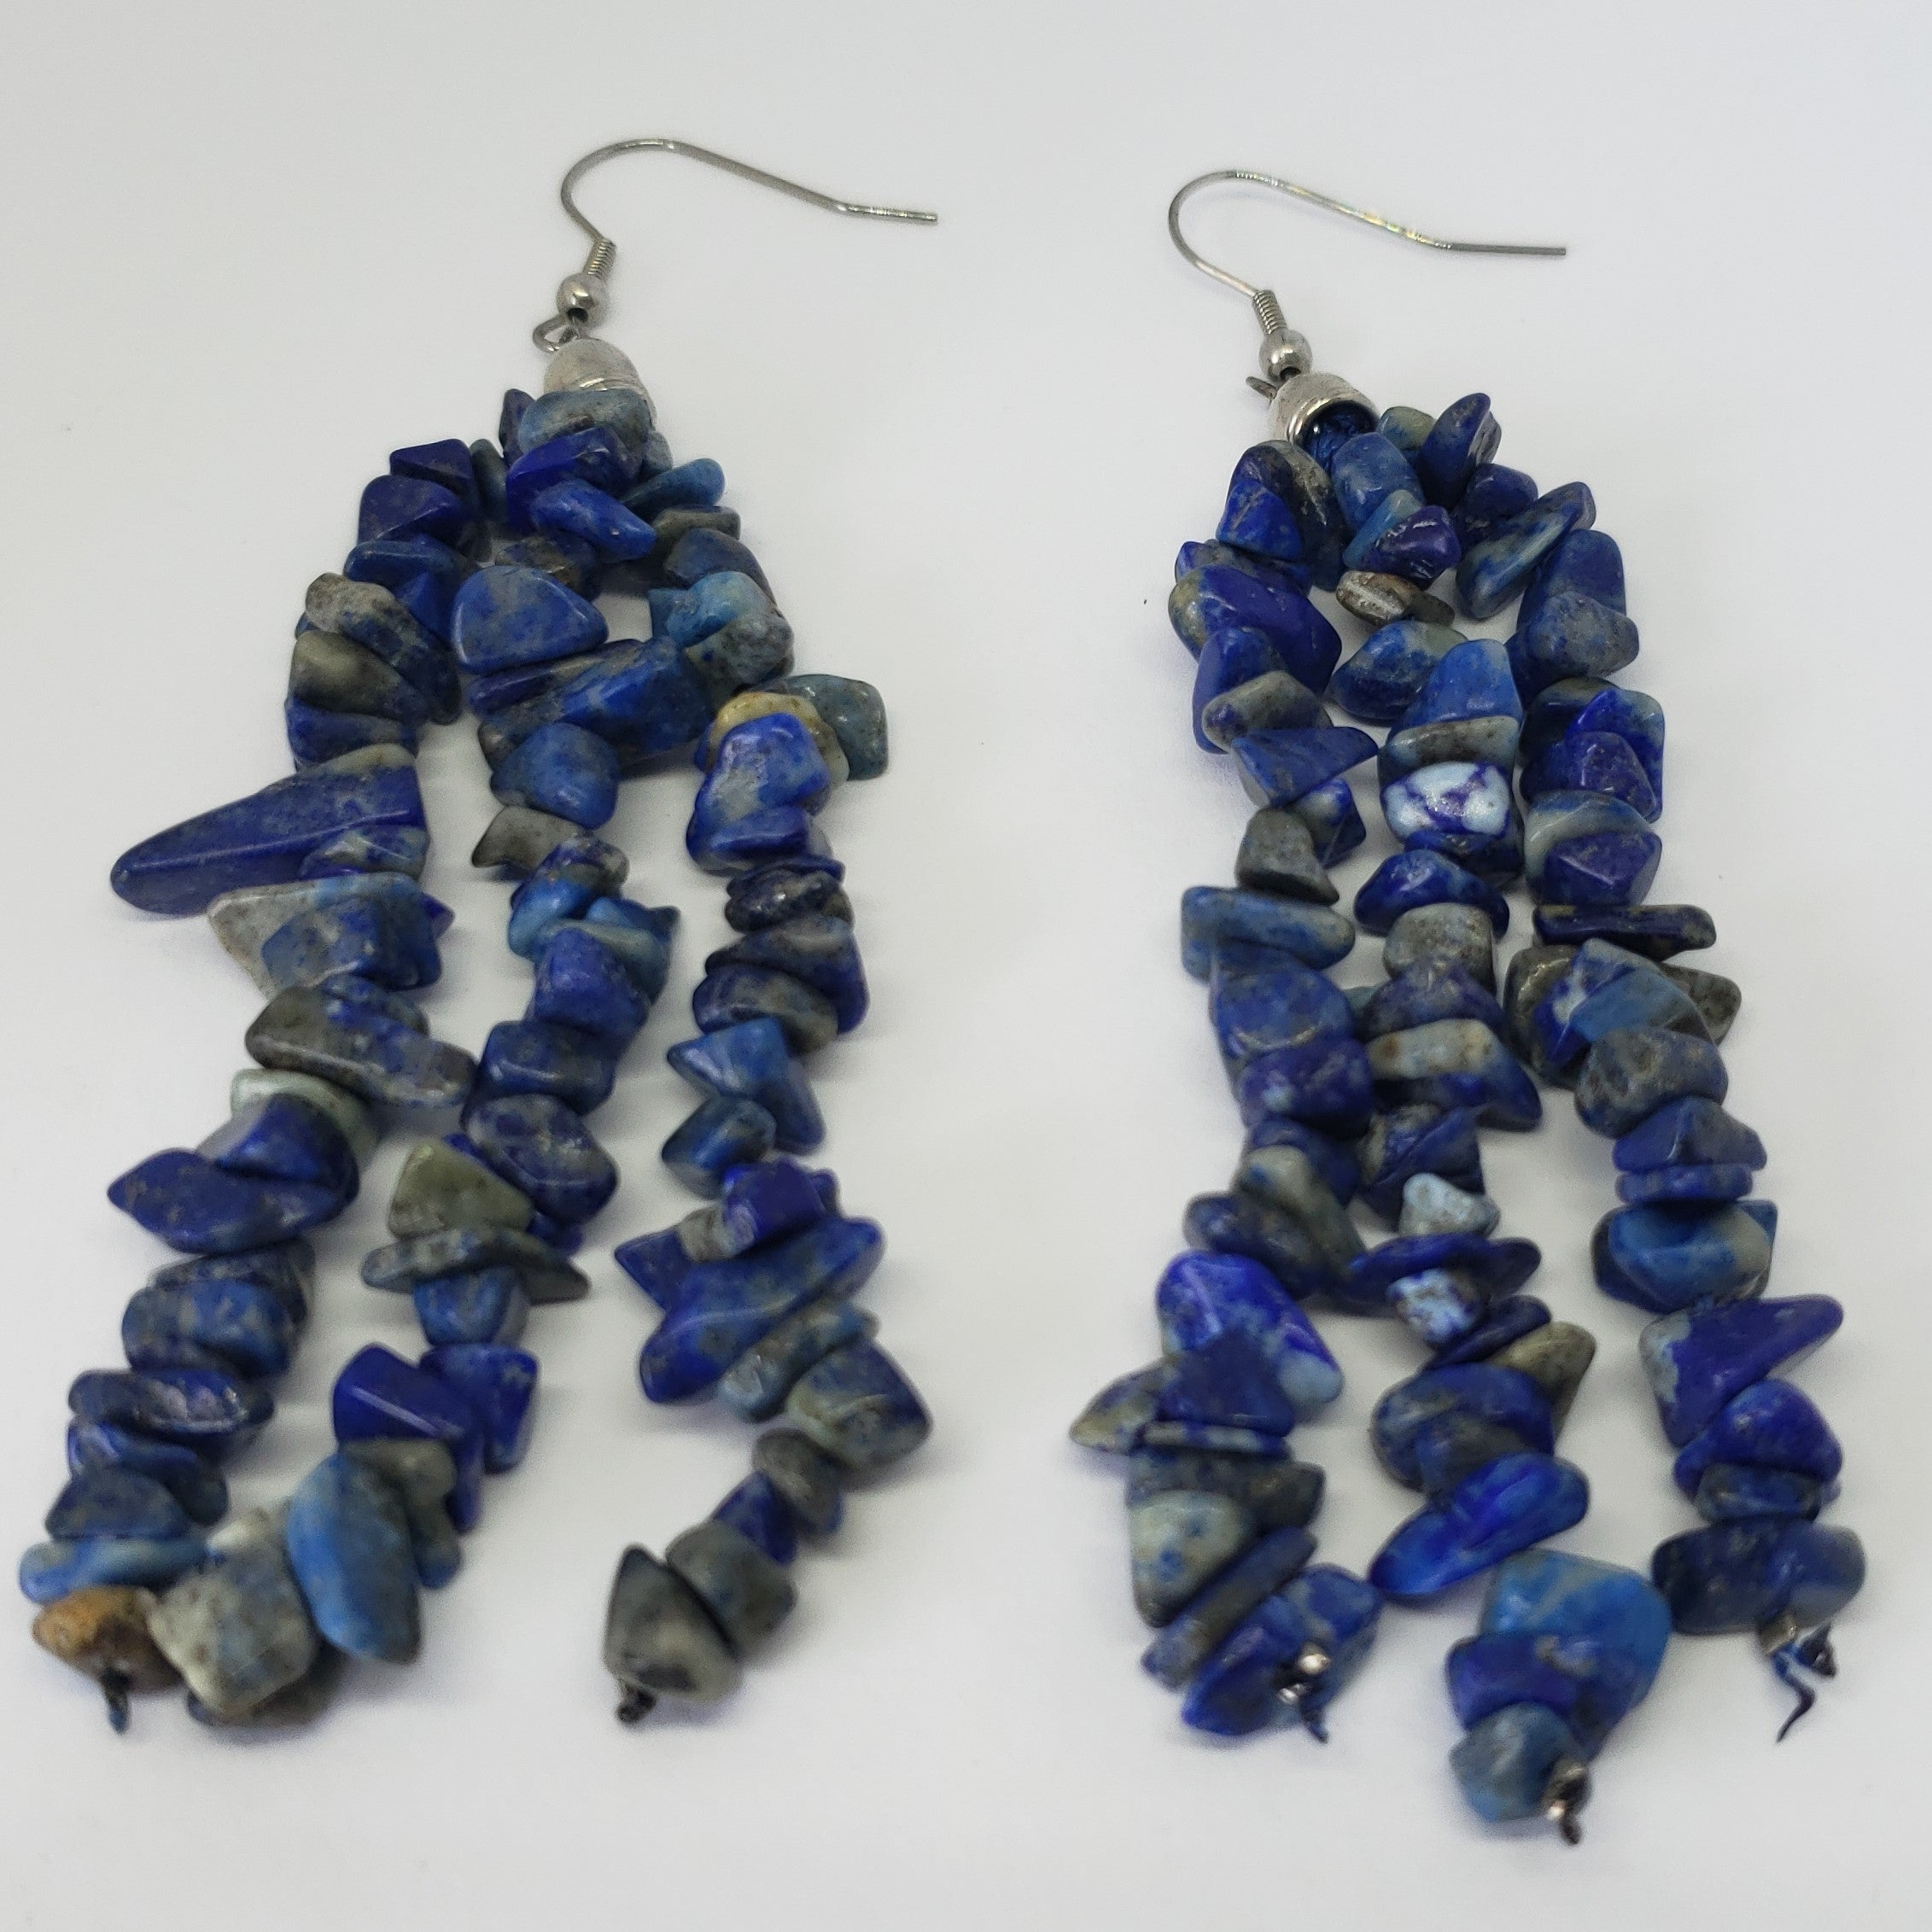 Lapis Lazuli Polished Chip Beads Triple Strand Earrings in Stainless Steel - Houzz of DVA Boutique